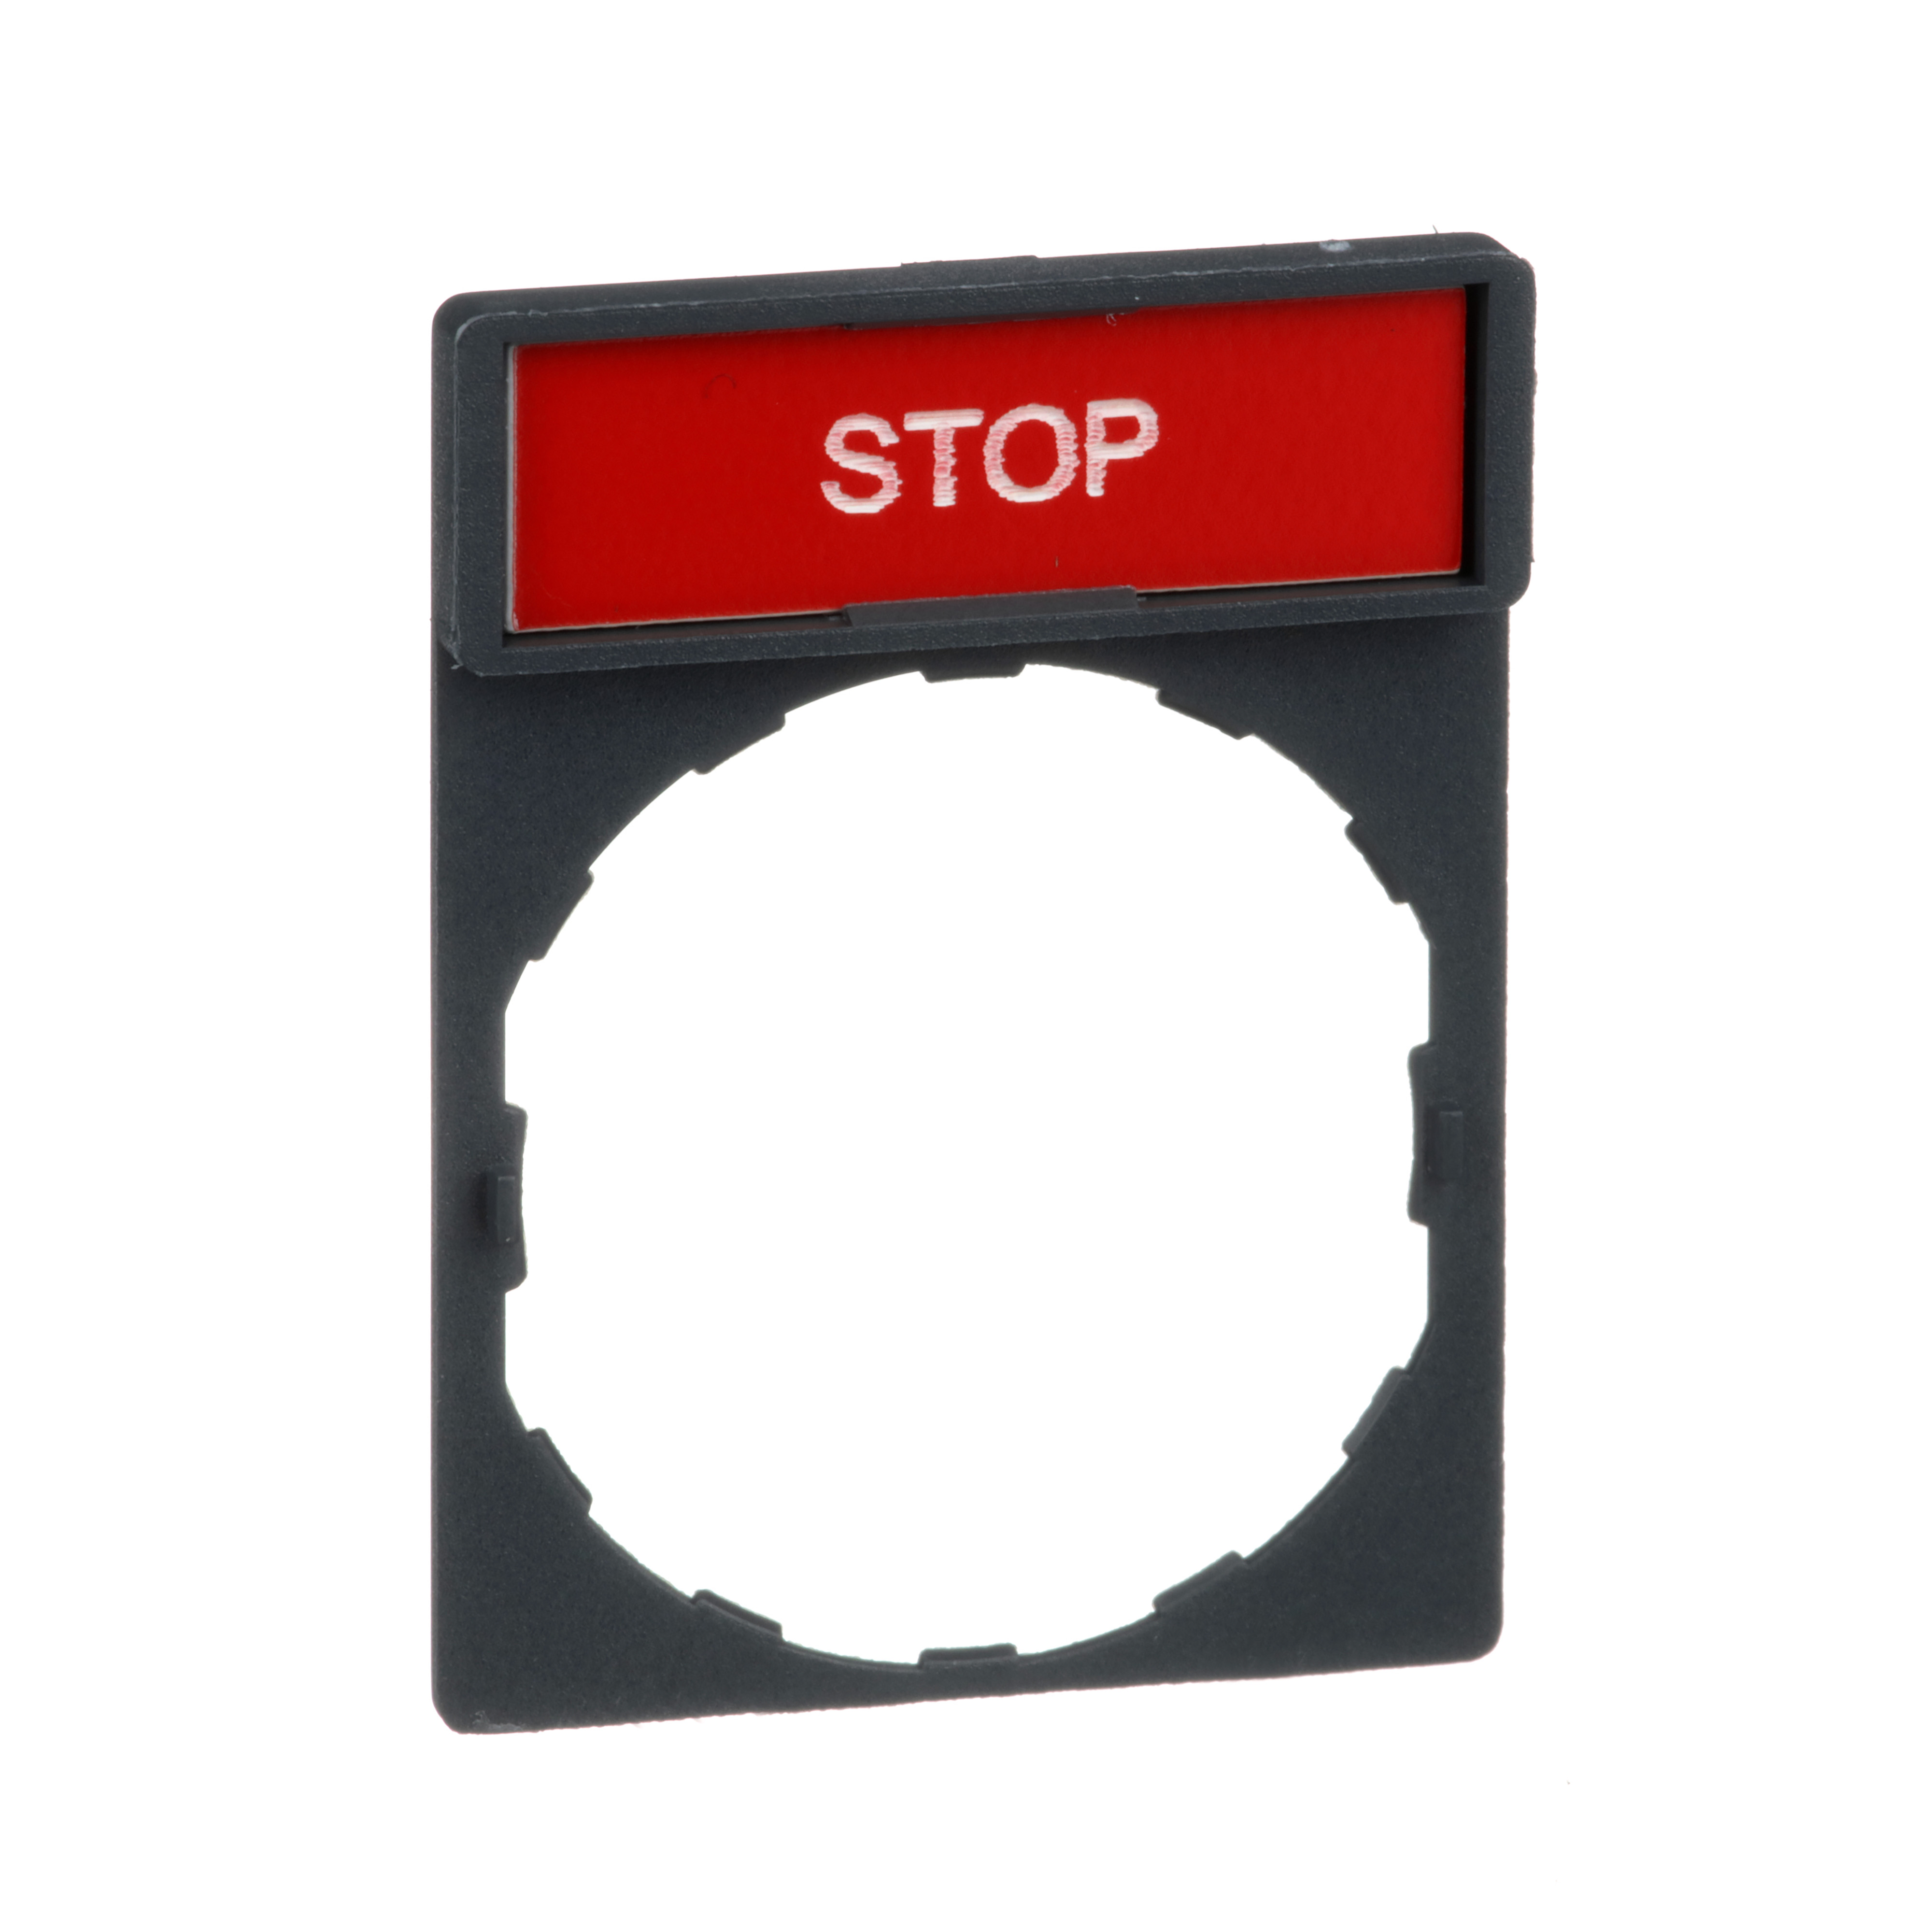 SQUARE D Harmony, 22mm Push Button, legend holder 30 x 40 mm, with legend 8 x 27 mm, marked STOP